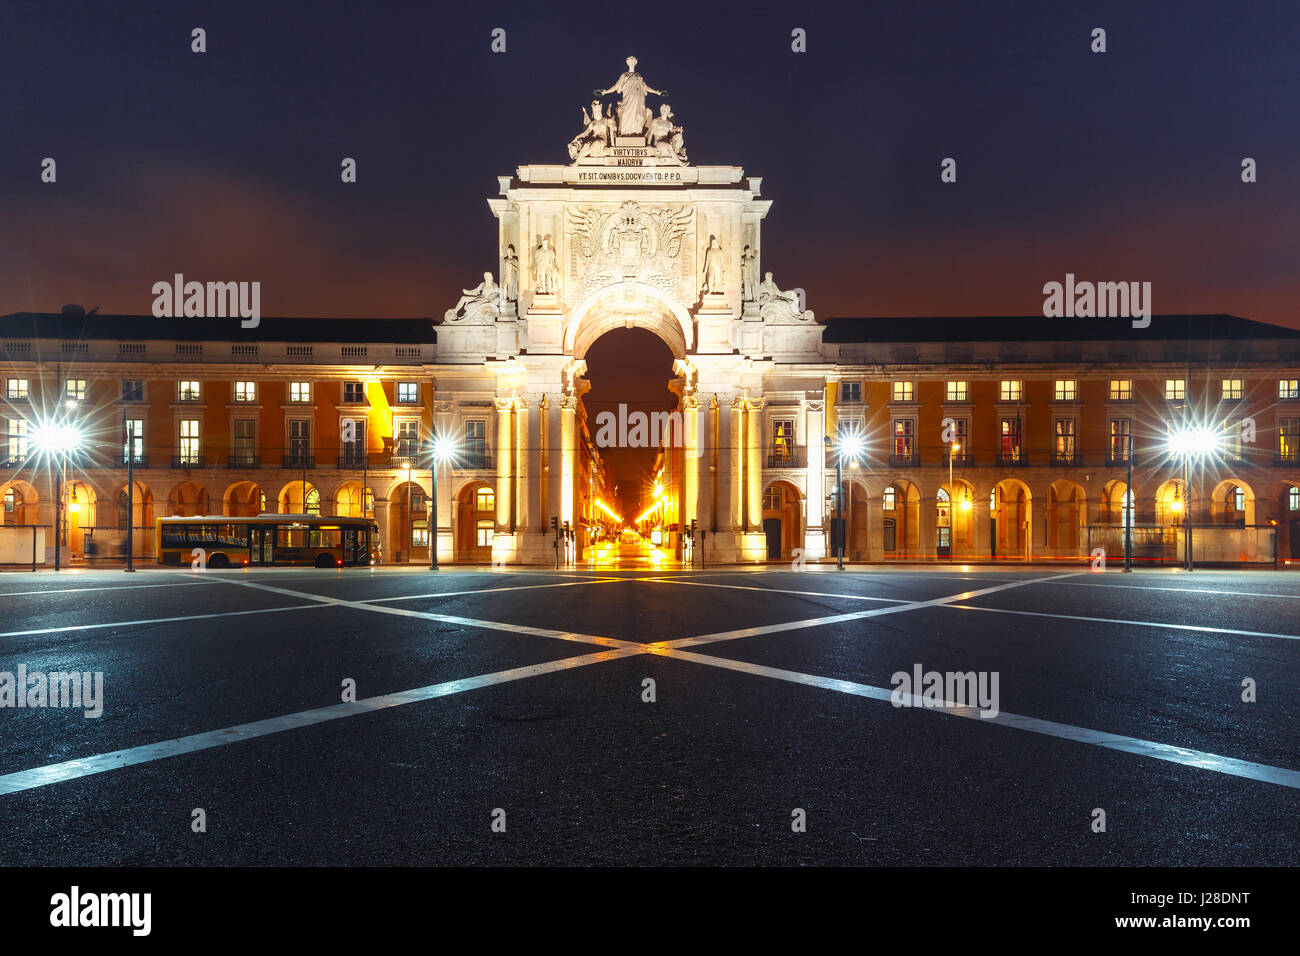 Commerce Square en la noche en Lisboa, Portugal. Foto de stock